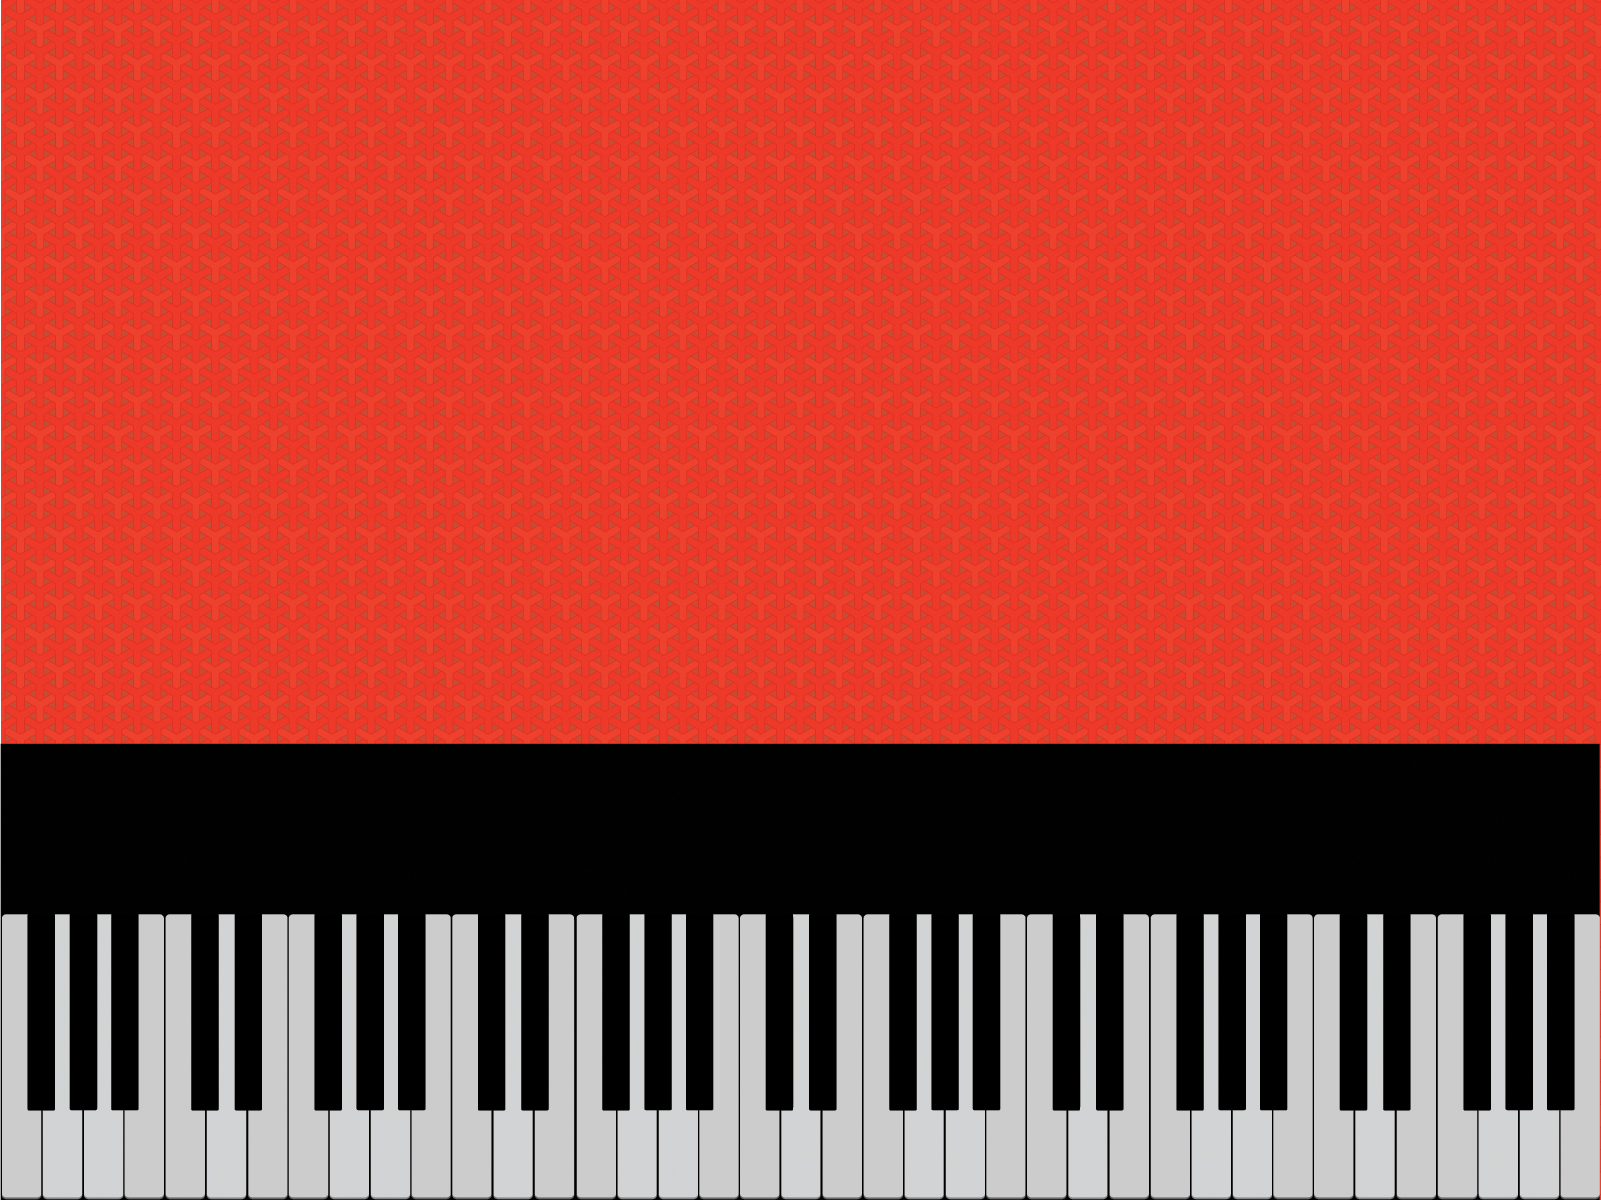 Clipart piano powerpoint background. On red templates black